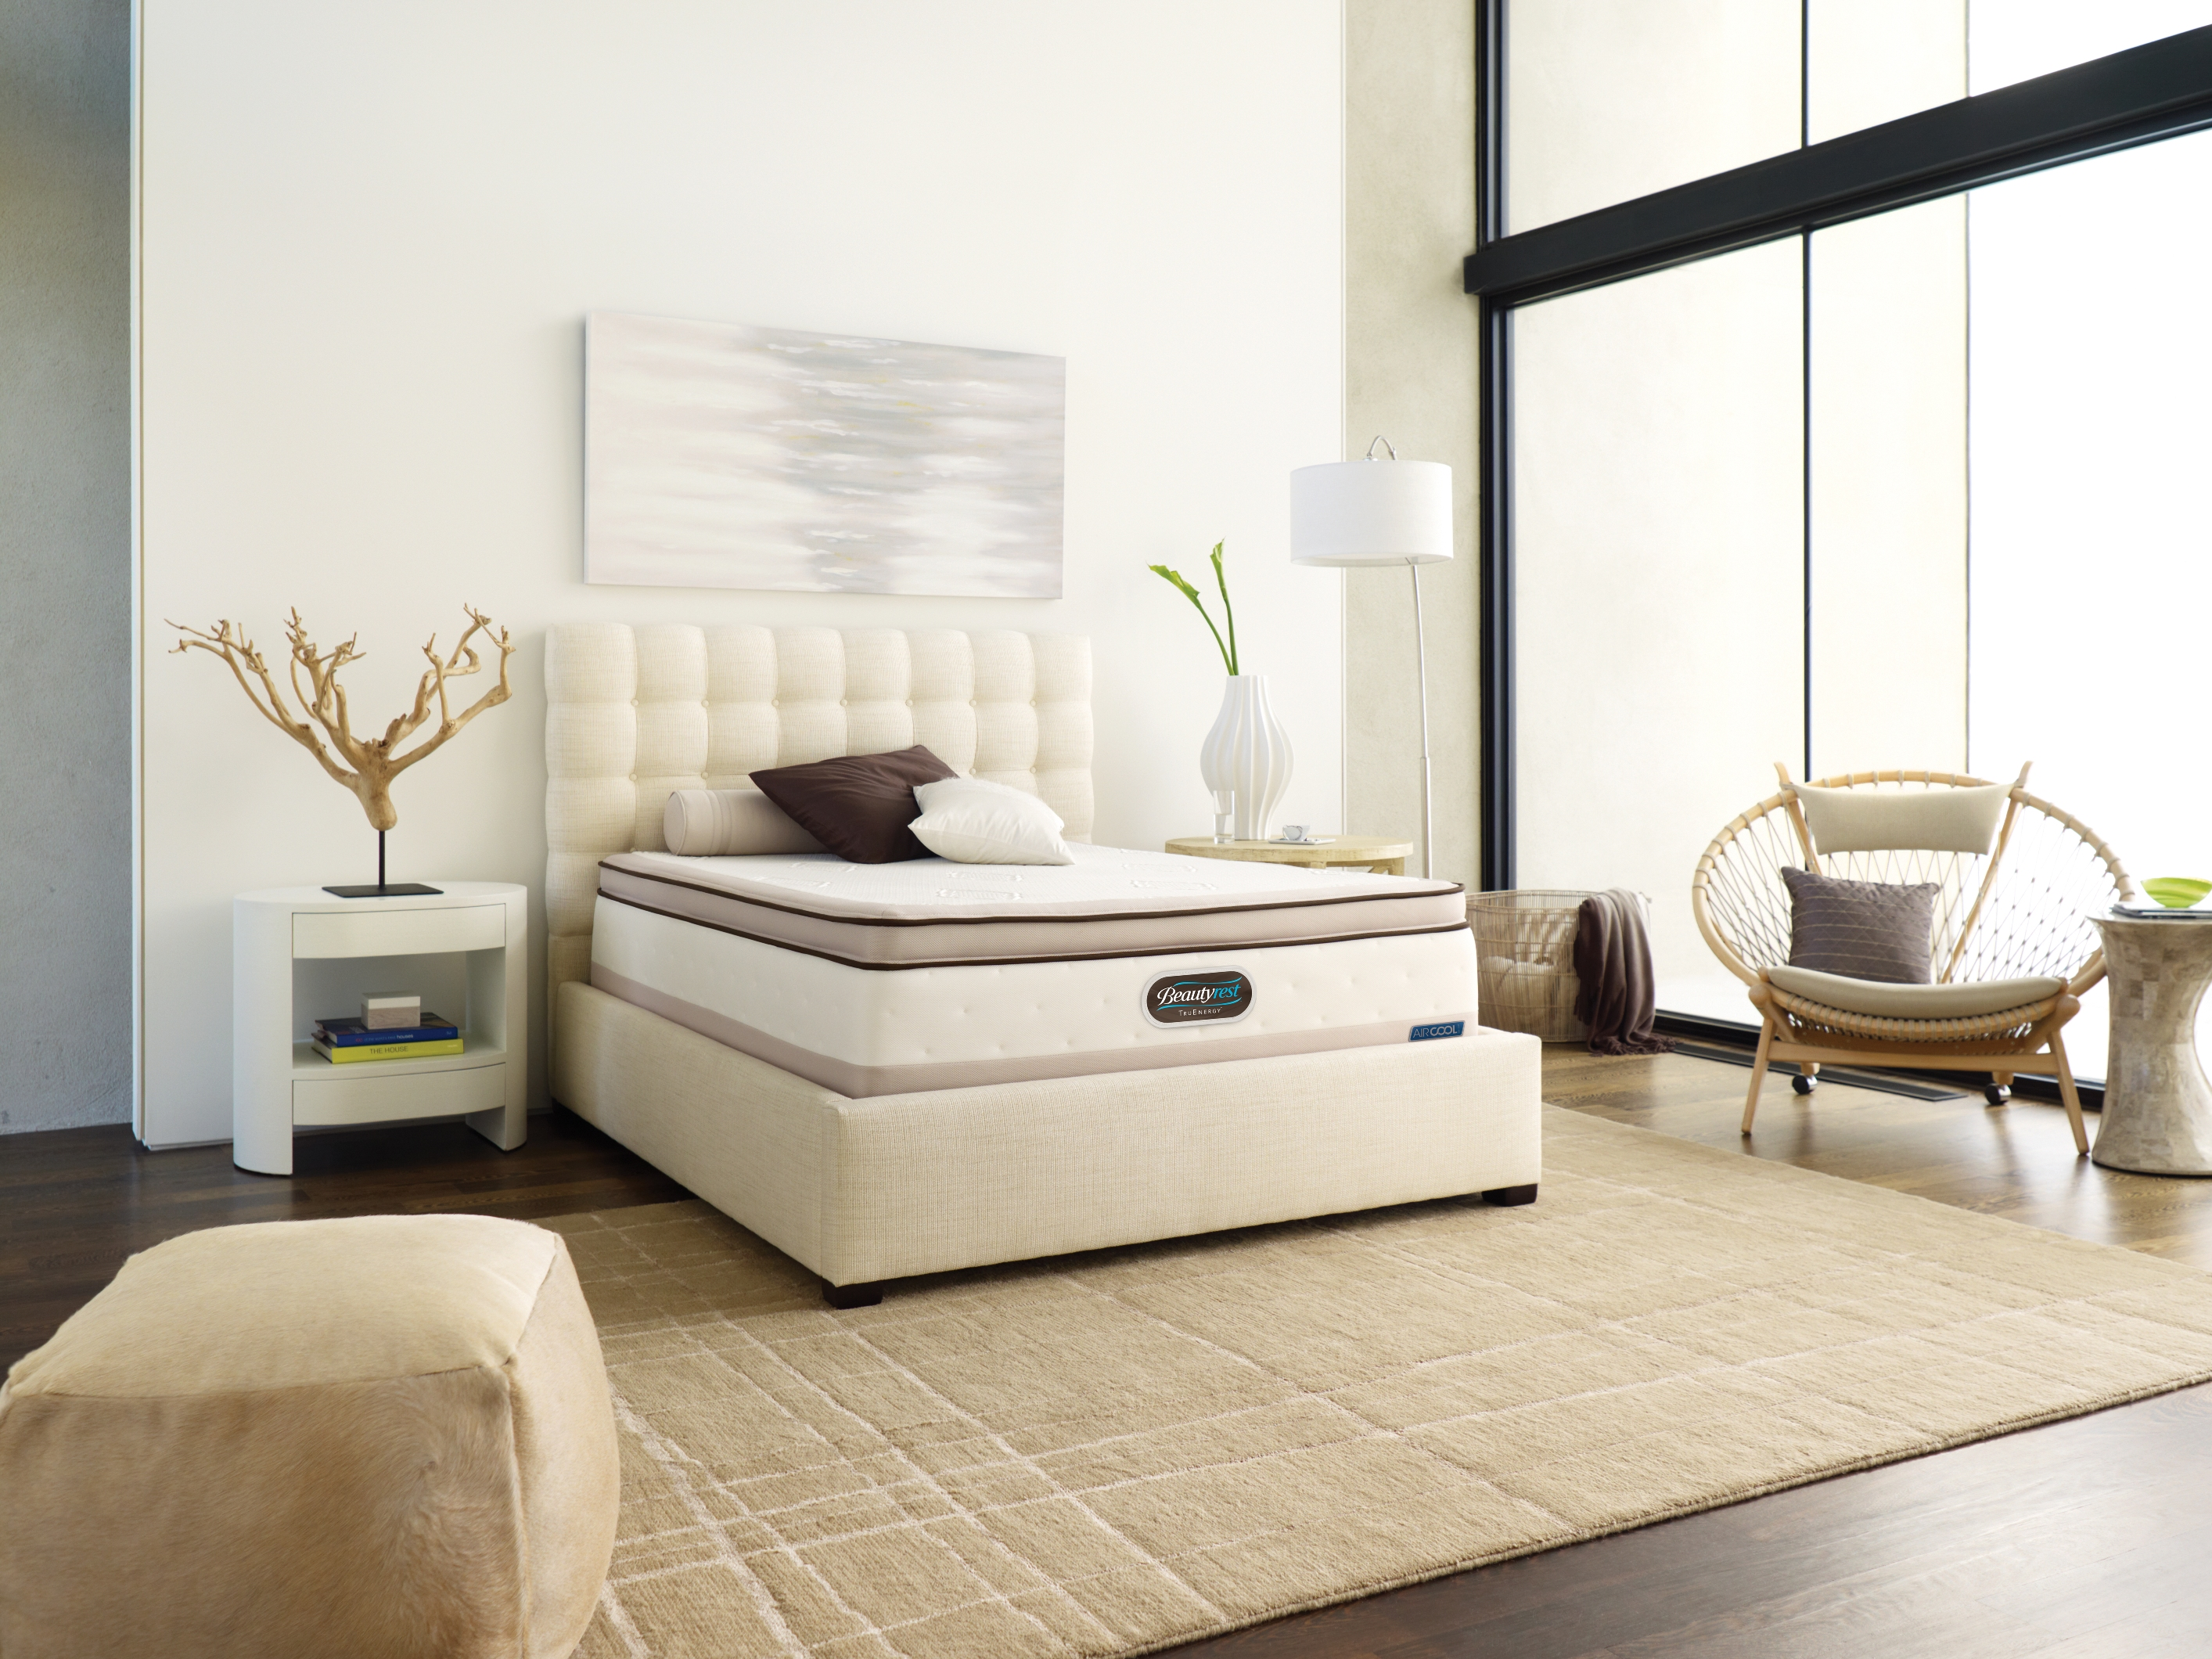 The Cheapest Twin XL Flex-a-Bed Premier Base With Massage And Innerspring Mattress Online